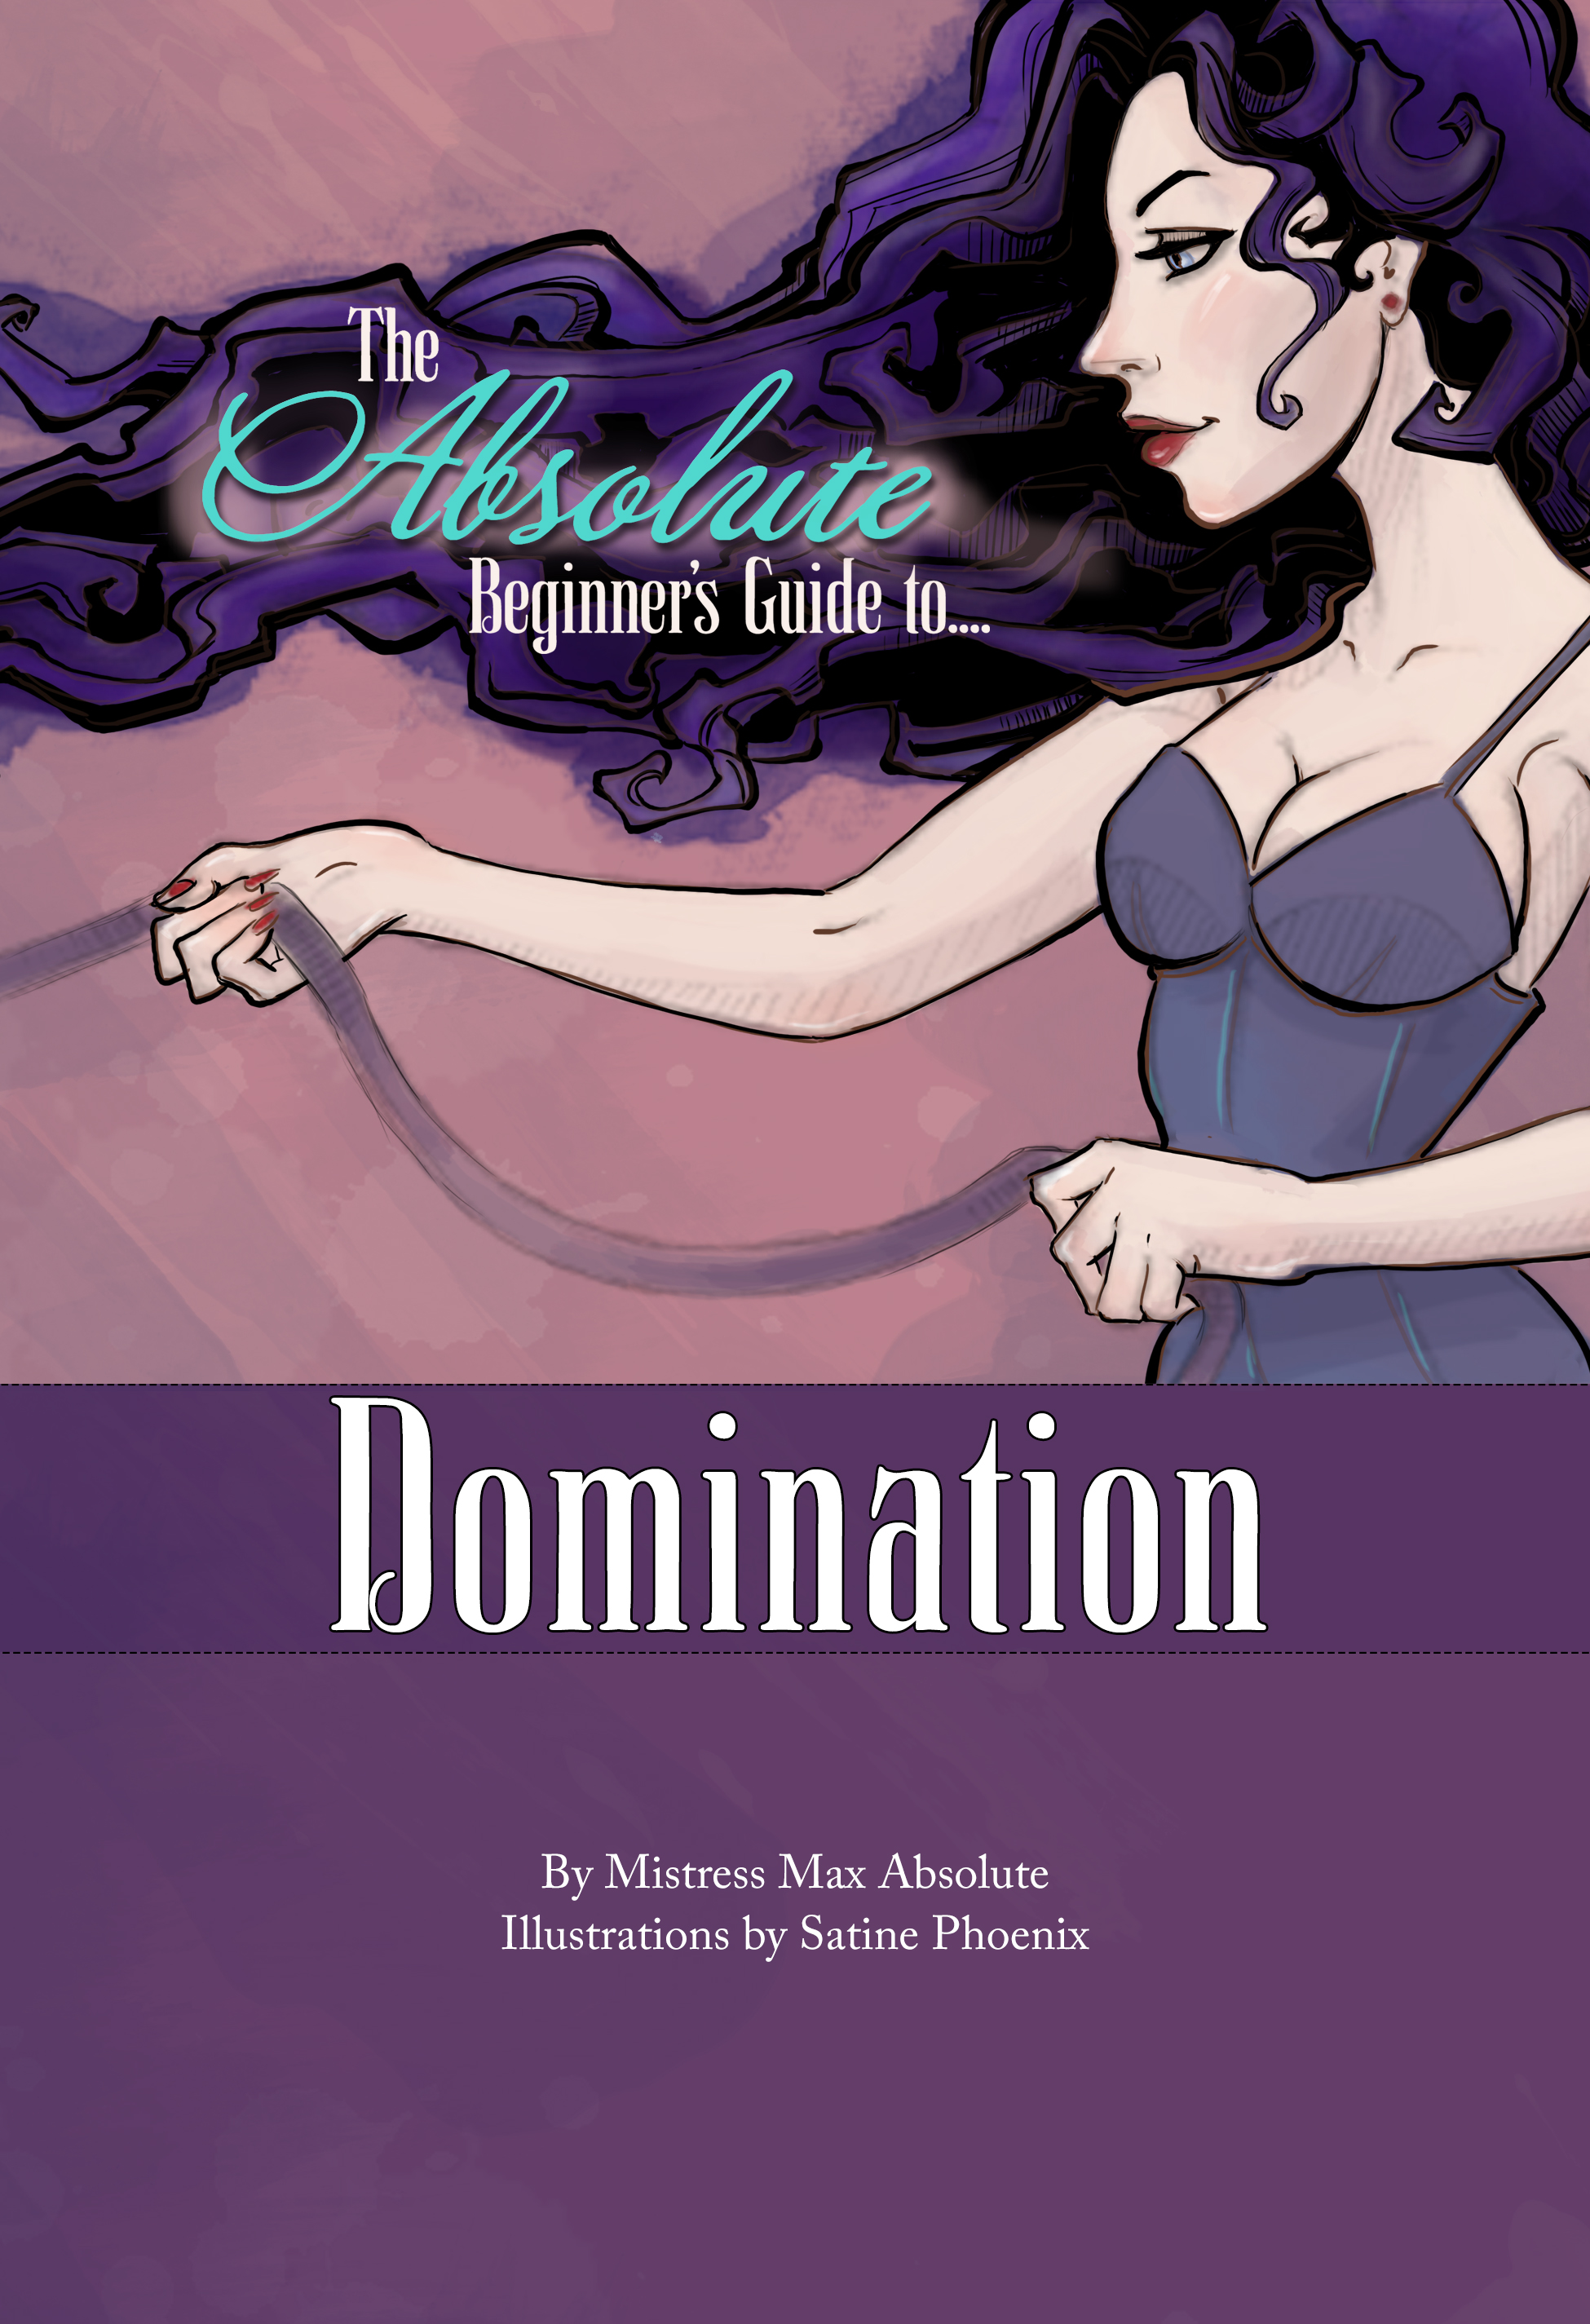 Mistress Absolute's The Absolute Beginner's Guide to Domination